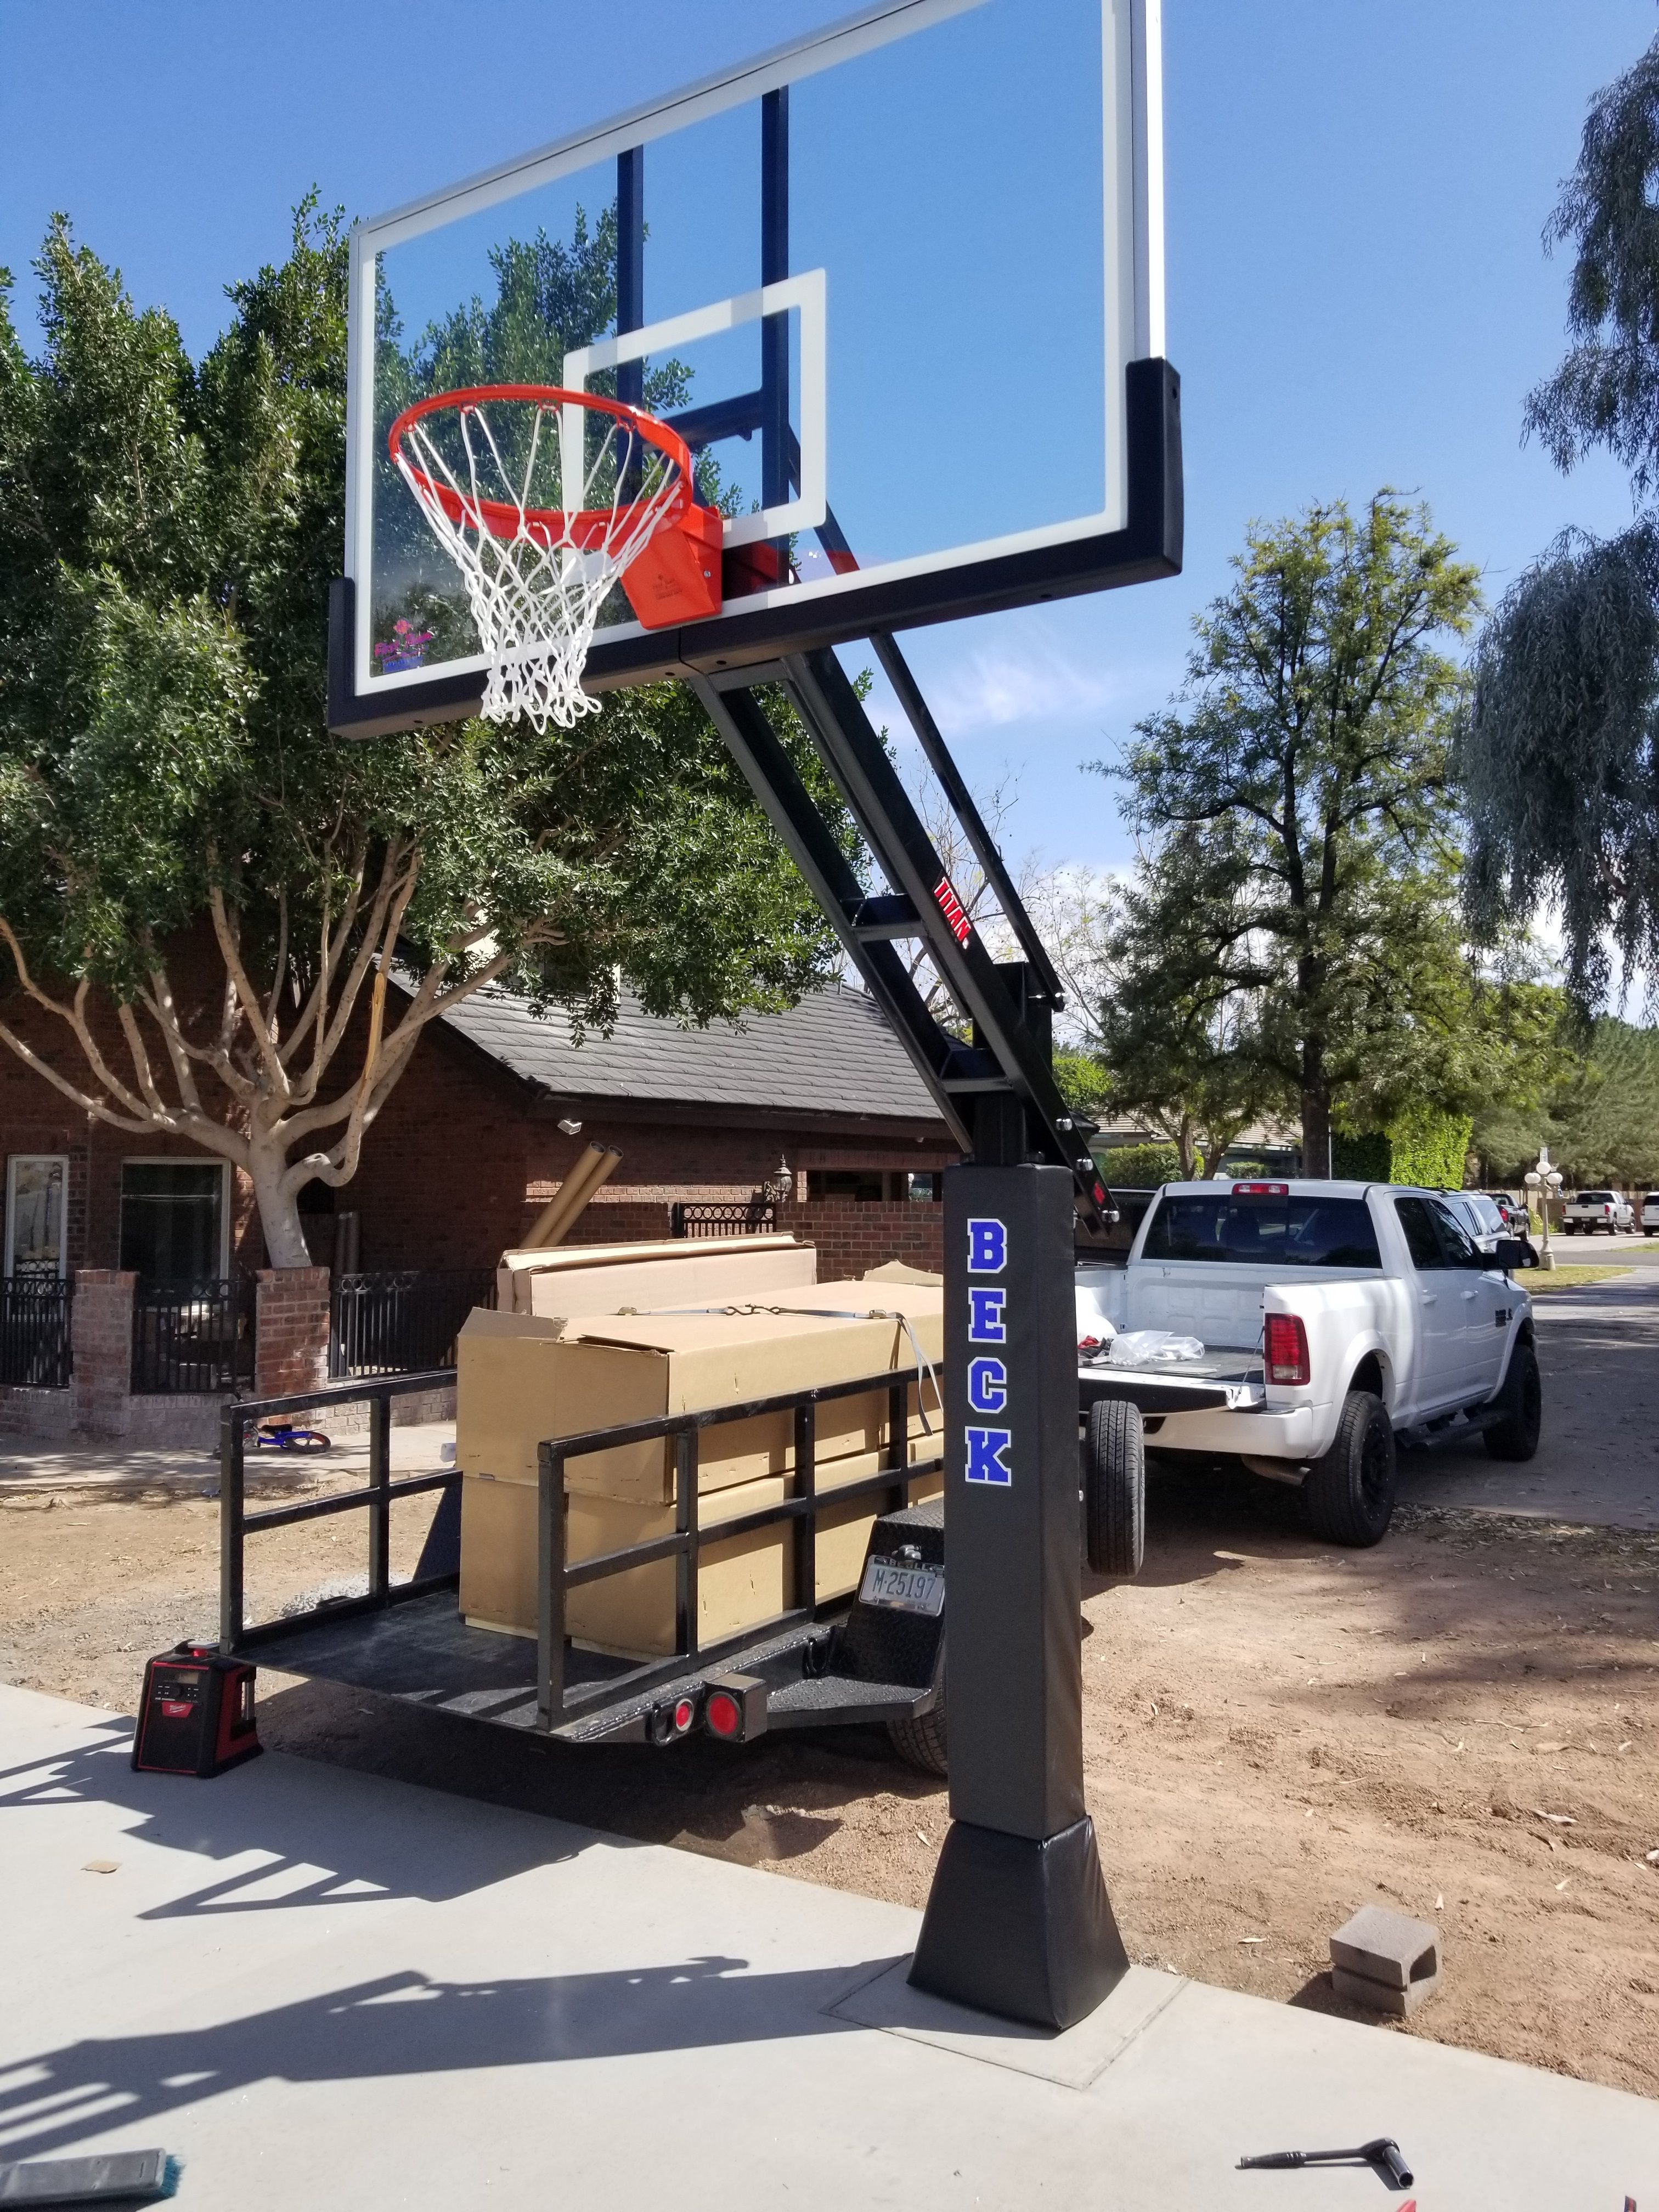 Titan Arena Manufactured By First Team Sports In Hutchinson Ks Rim Height Is Adjustable Fr Basketball Goals In Ground Basketball Goal Basketball Backboard